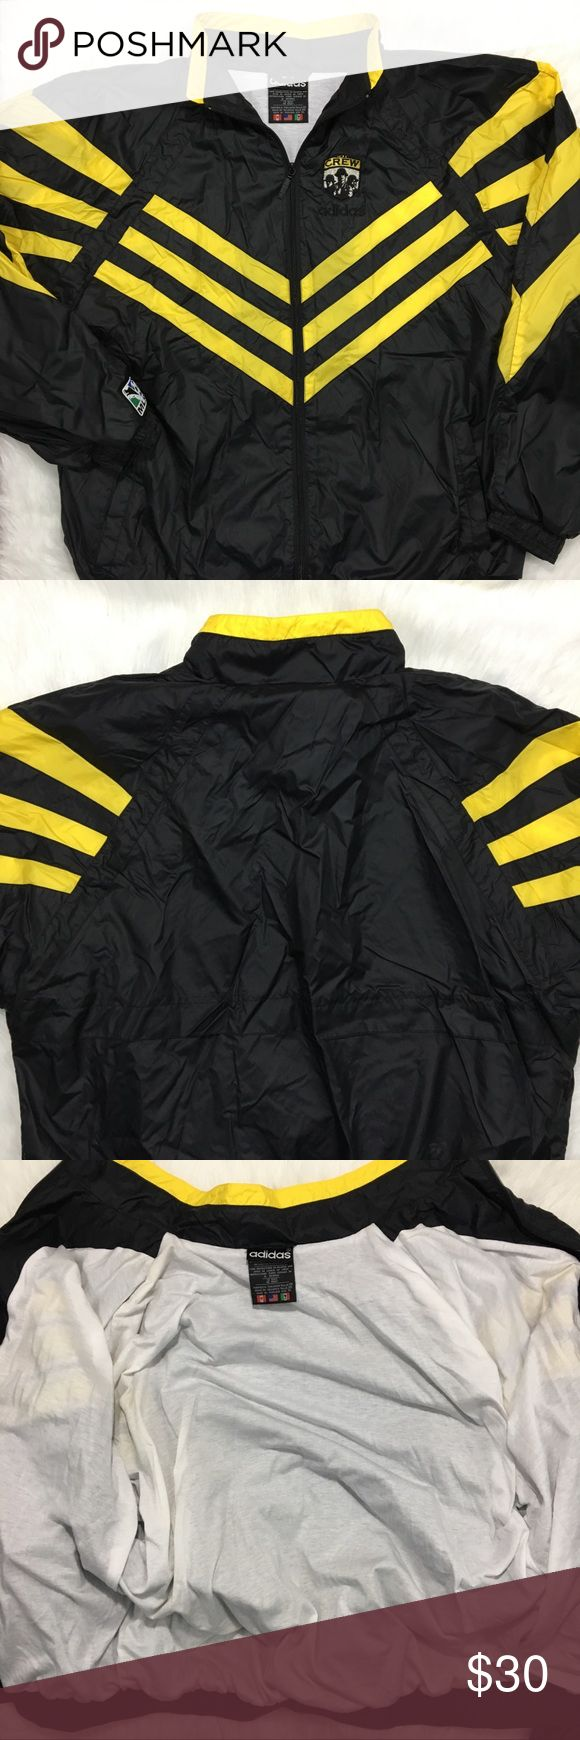 "Adidas The Crew MLS Jacket Black Yellow Pre-owned condition. Adidas The Crew MLS Jacket in a US Men's XL. Black/yellow color. In great condition. Please inspect all photos carefully. Thanks for viewing!  Measurements taken laying flat Pit to pit: 27"" Neck to bottom: 28"" Sleeve length: 23"" adidas Jackets & Coats Lightweight & Shirt Jackets"